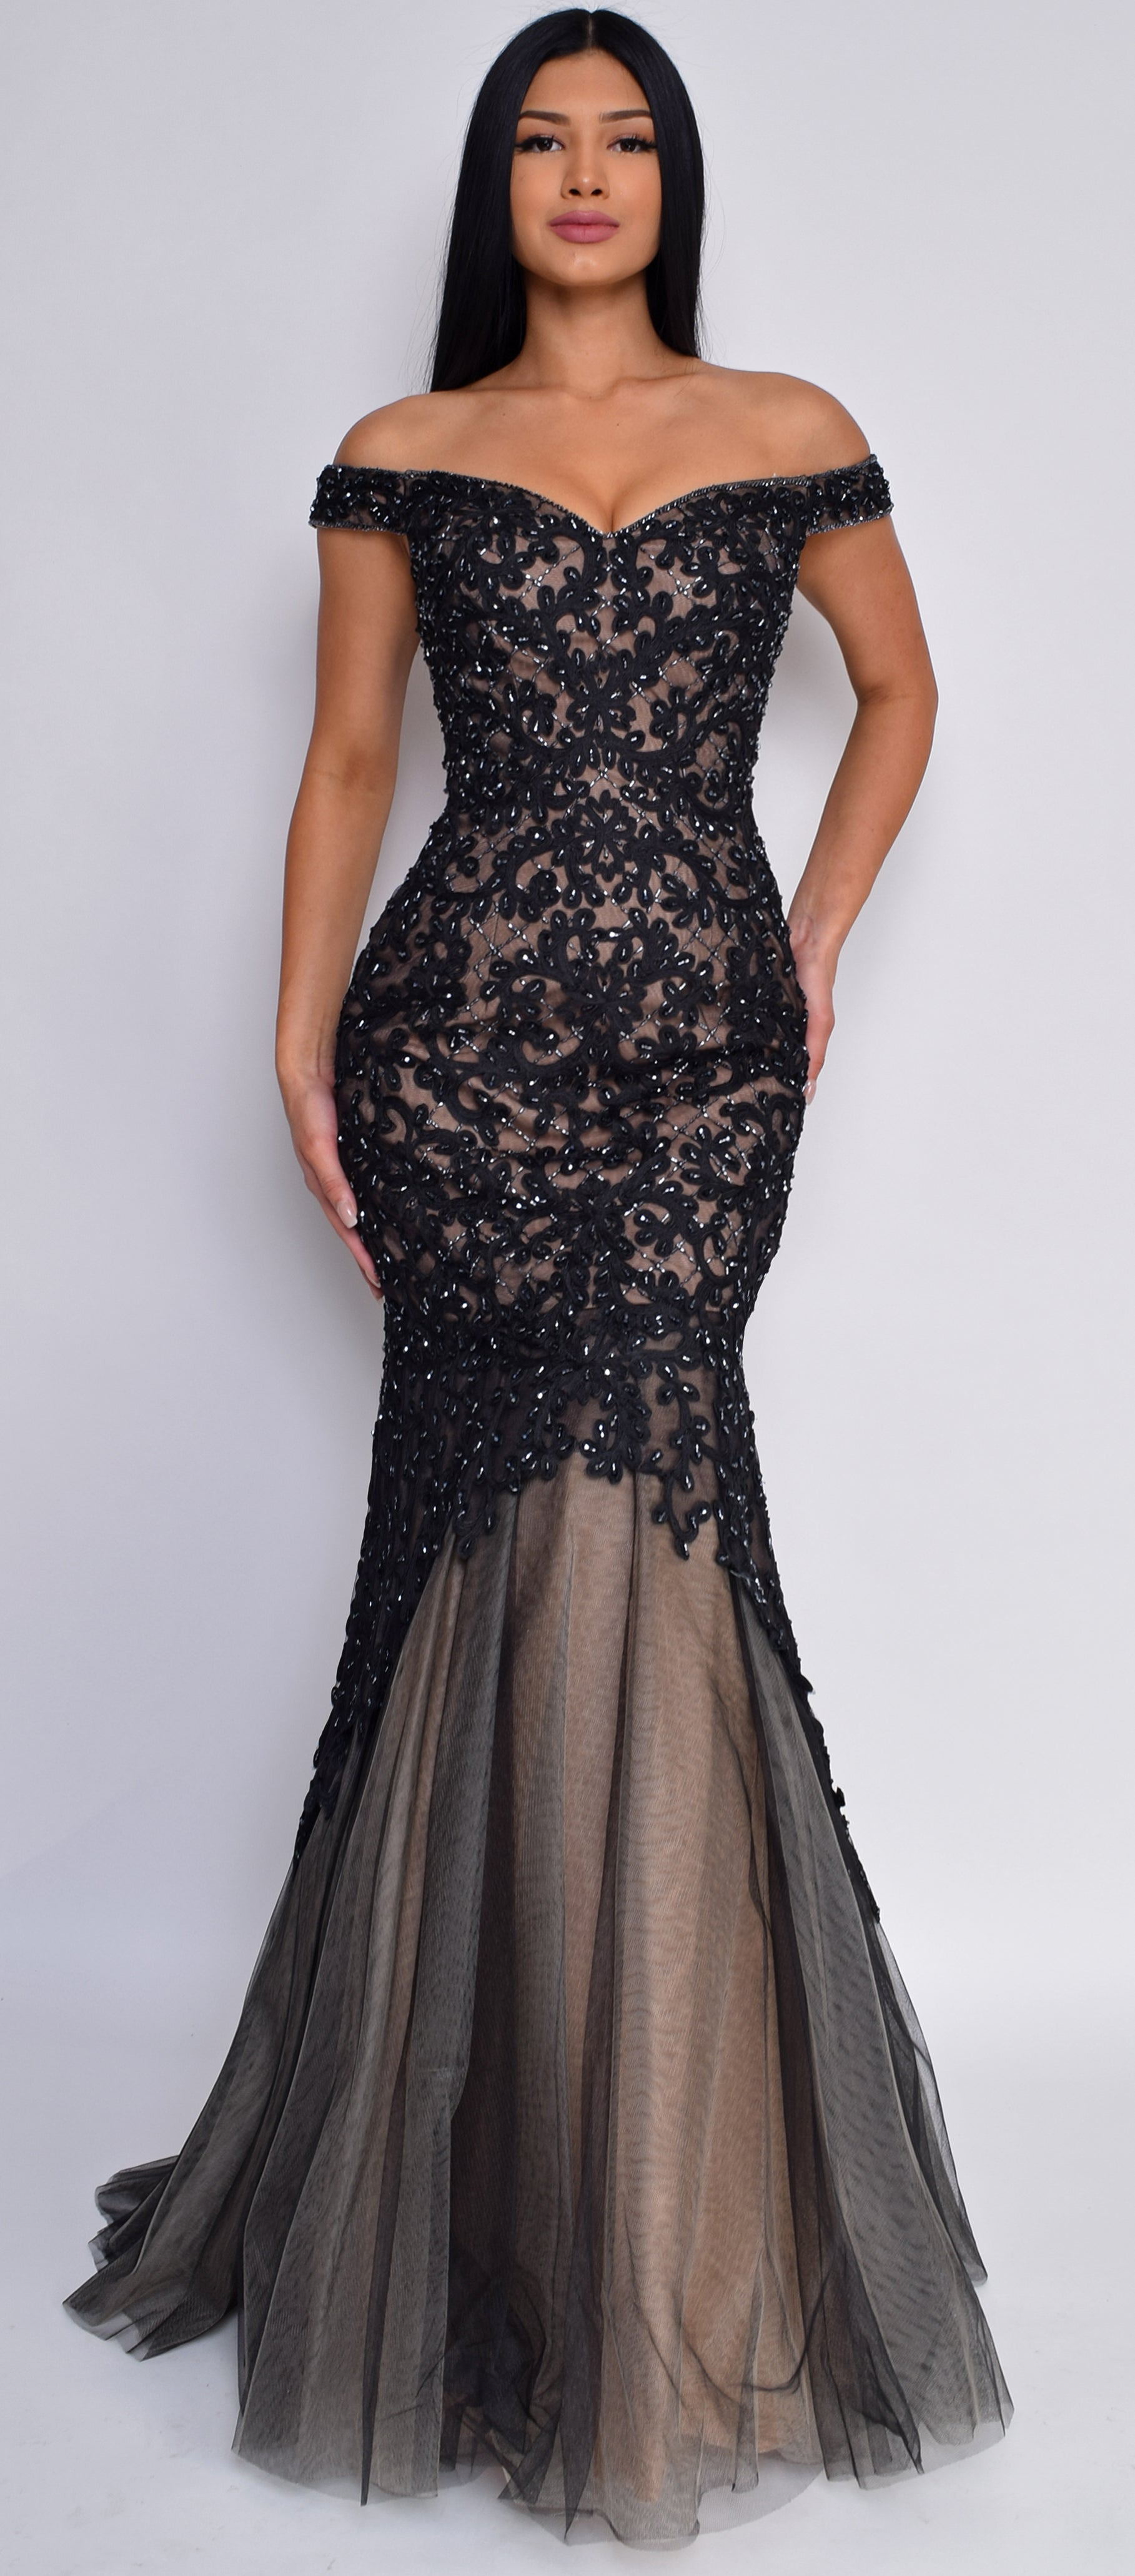 Delpha Black Nude Embellished Lace Gown